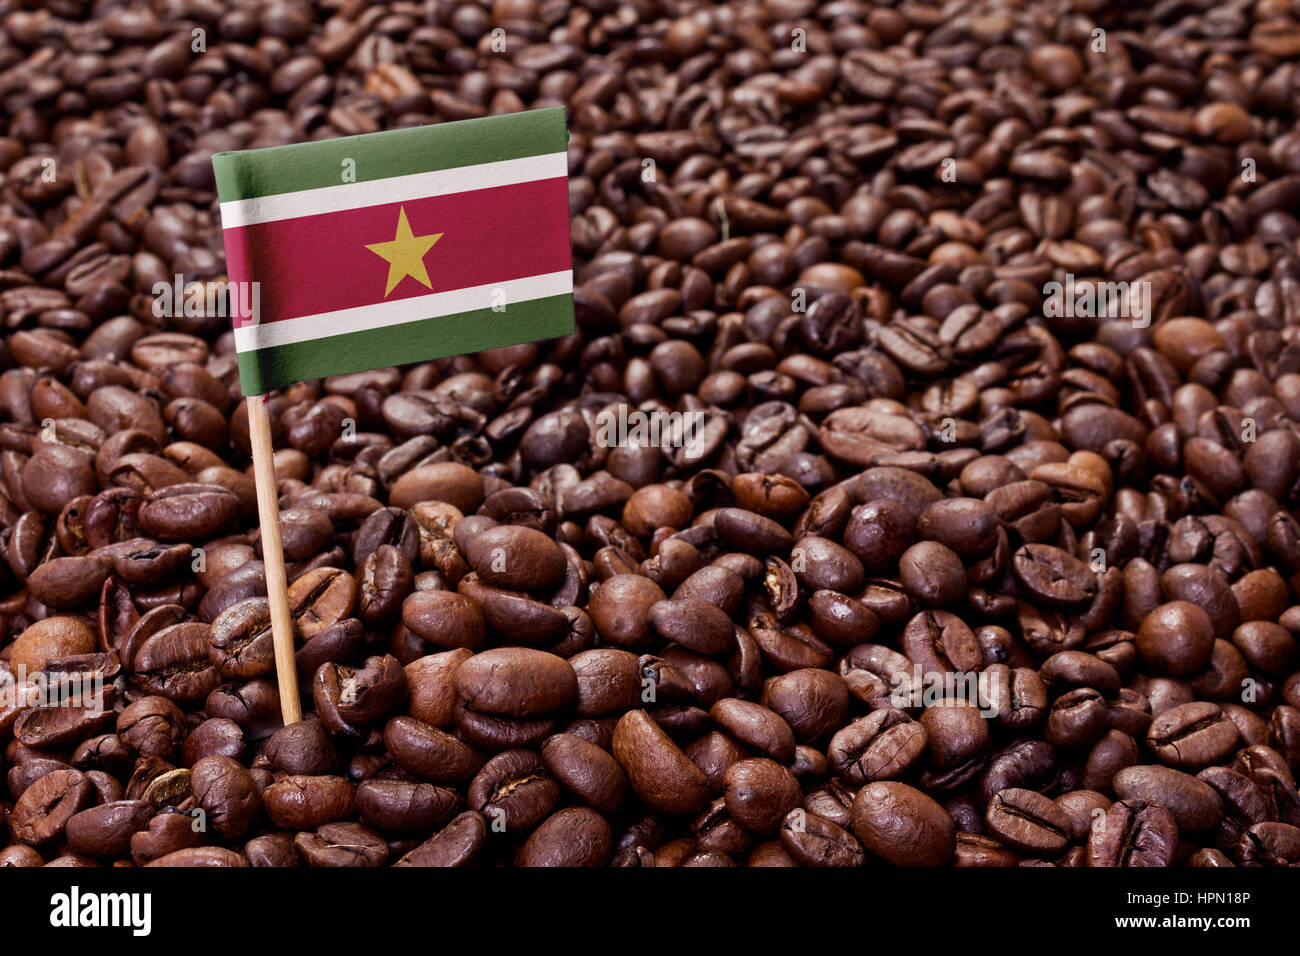 Flag of Suriname sticking in roasted coffee beans.(series) - Stock Image